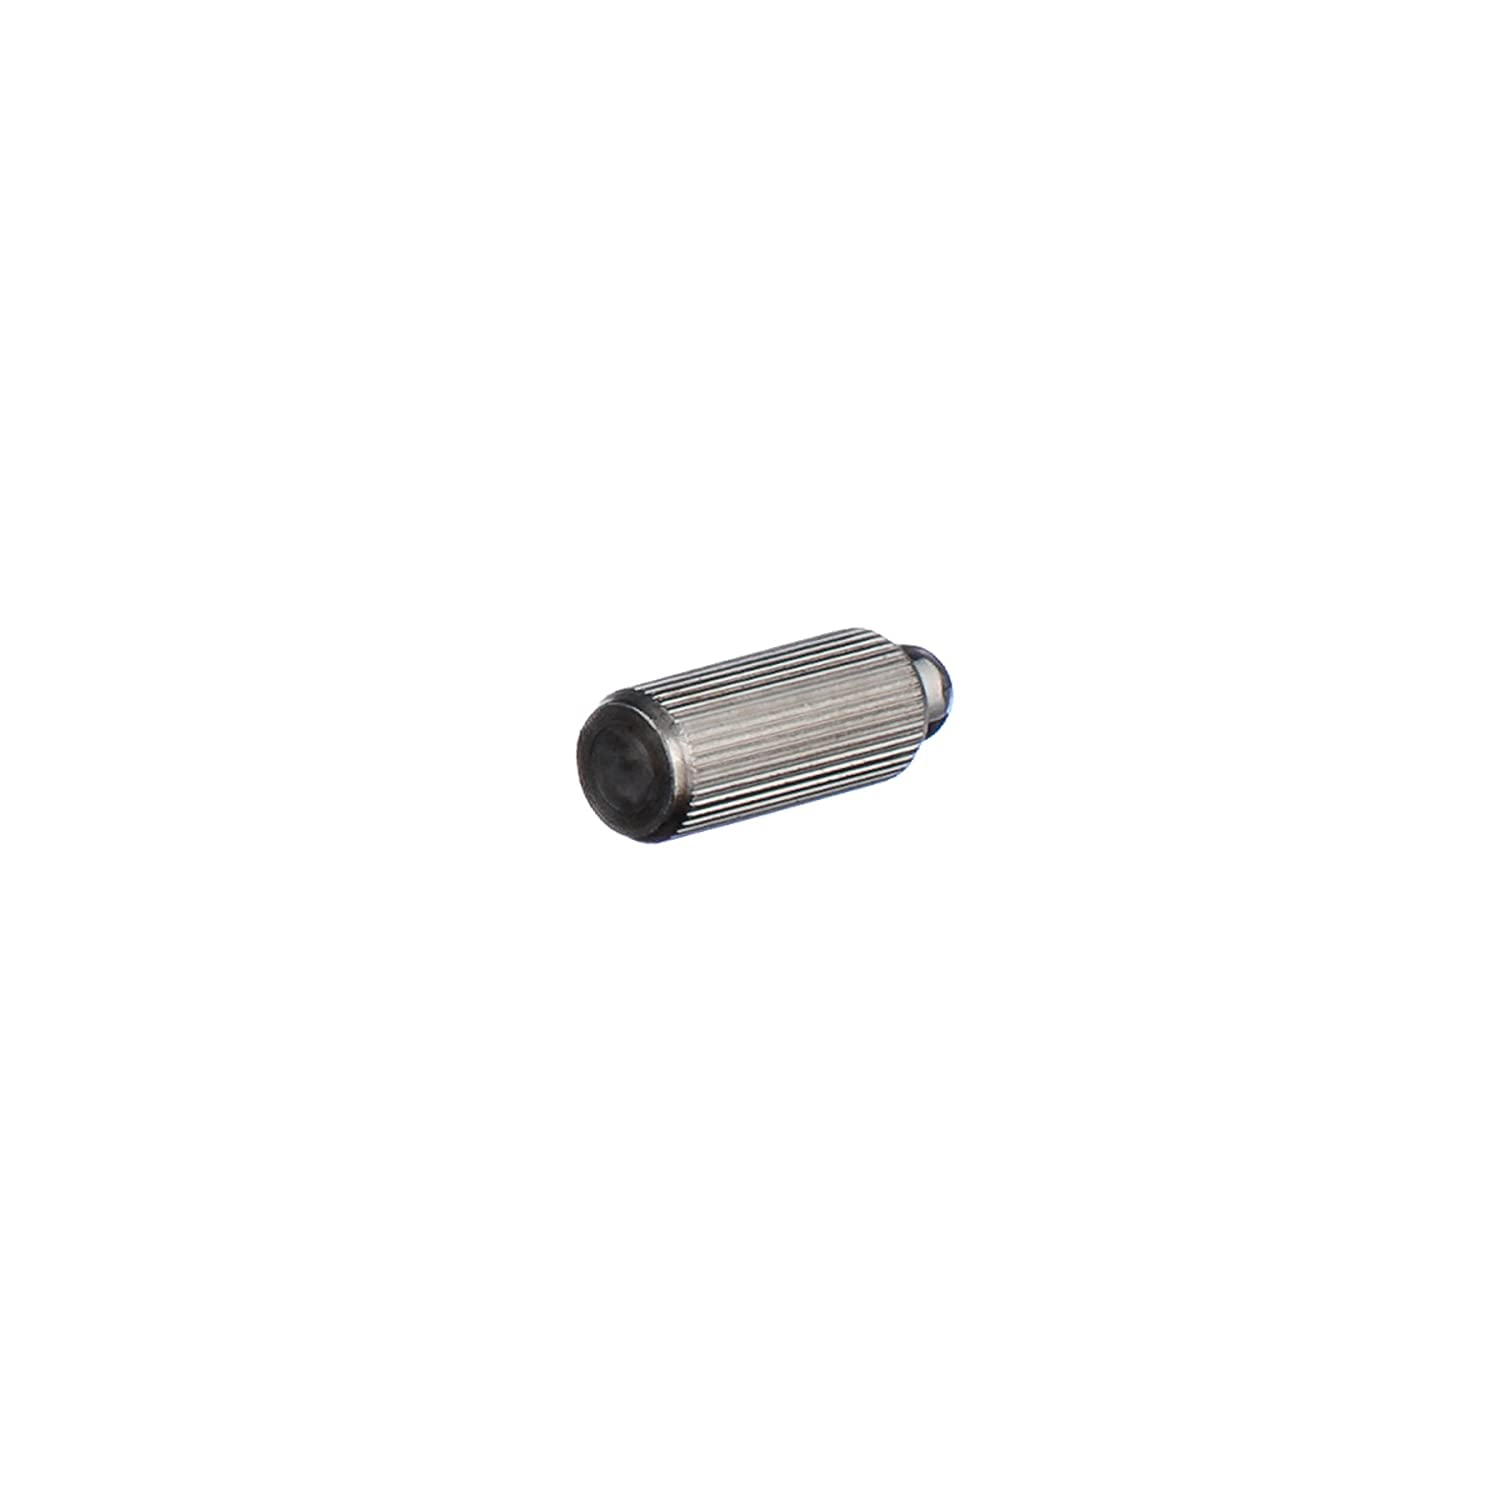 Vlier SPFPK53 Stainless Steel knurled Press-Fit Ball Plunger .254 ANSI Outside Thread